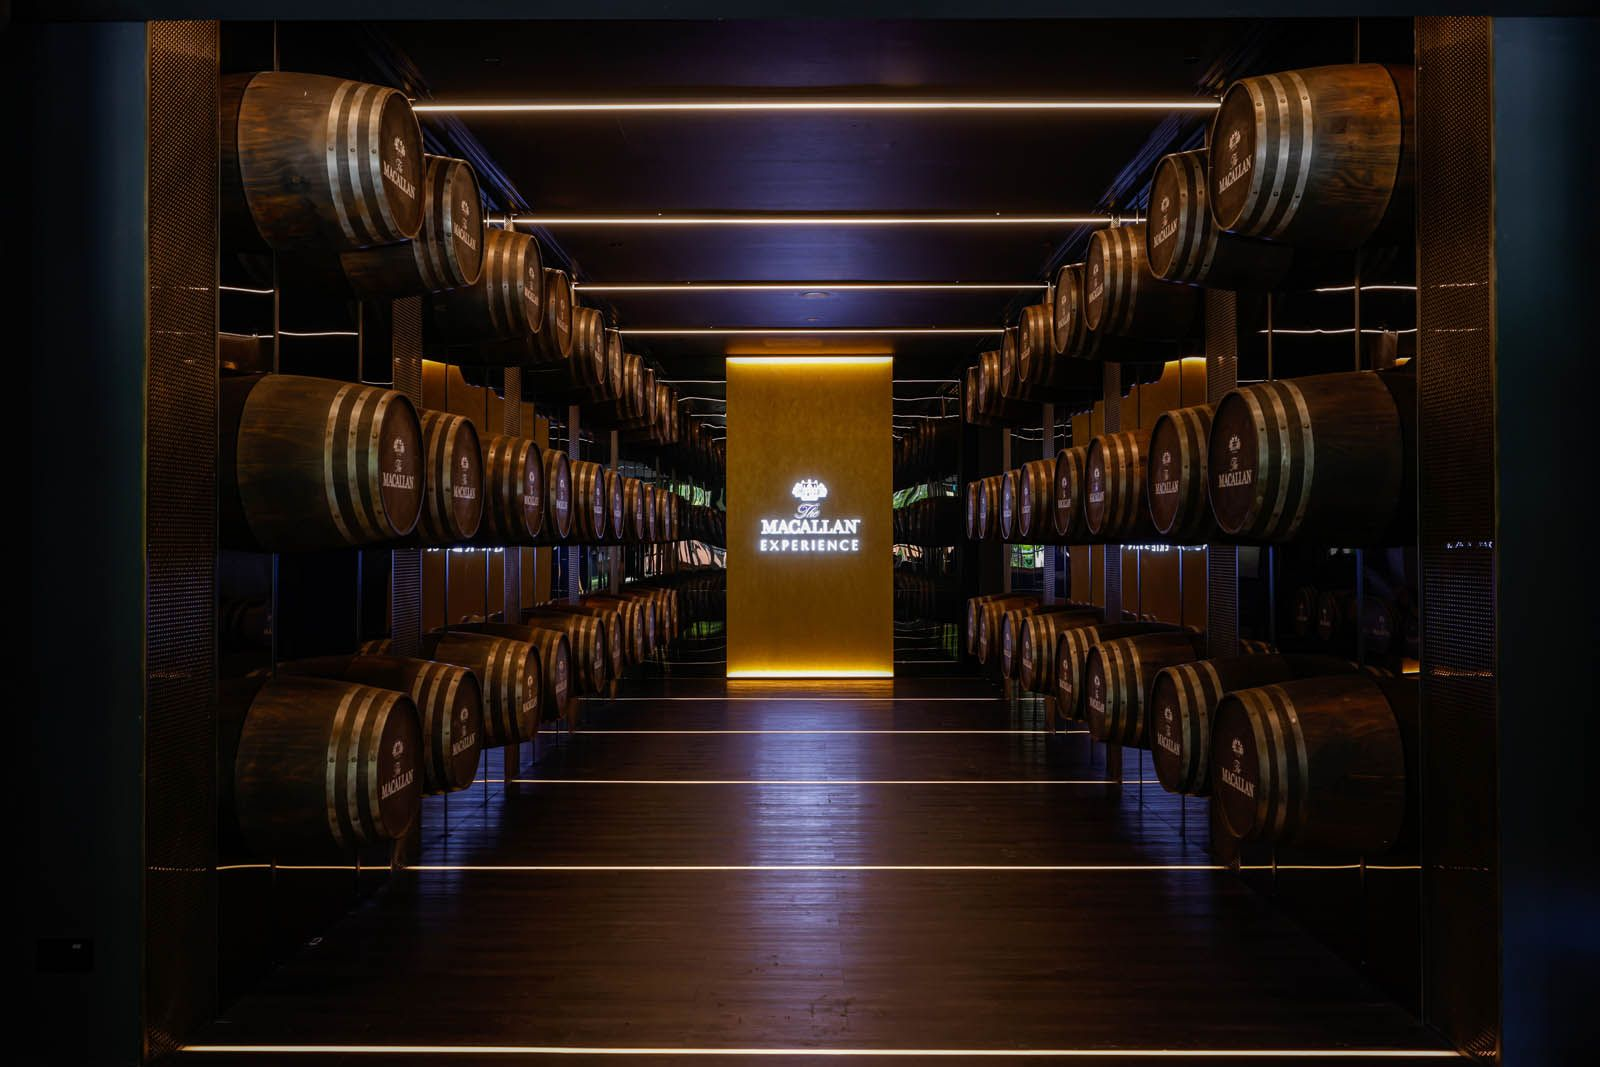 The Macallan Experience